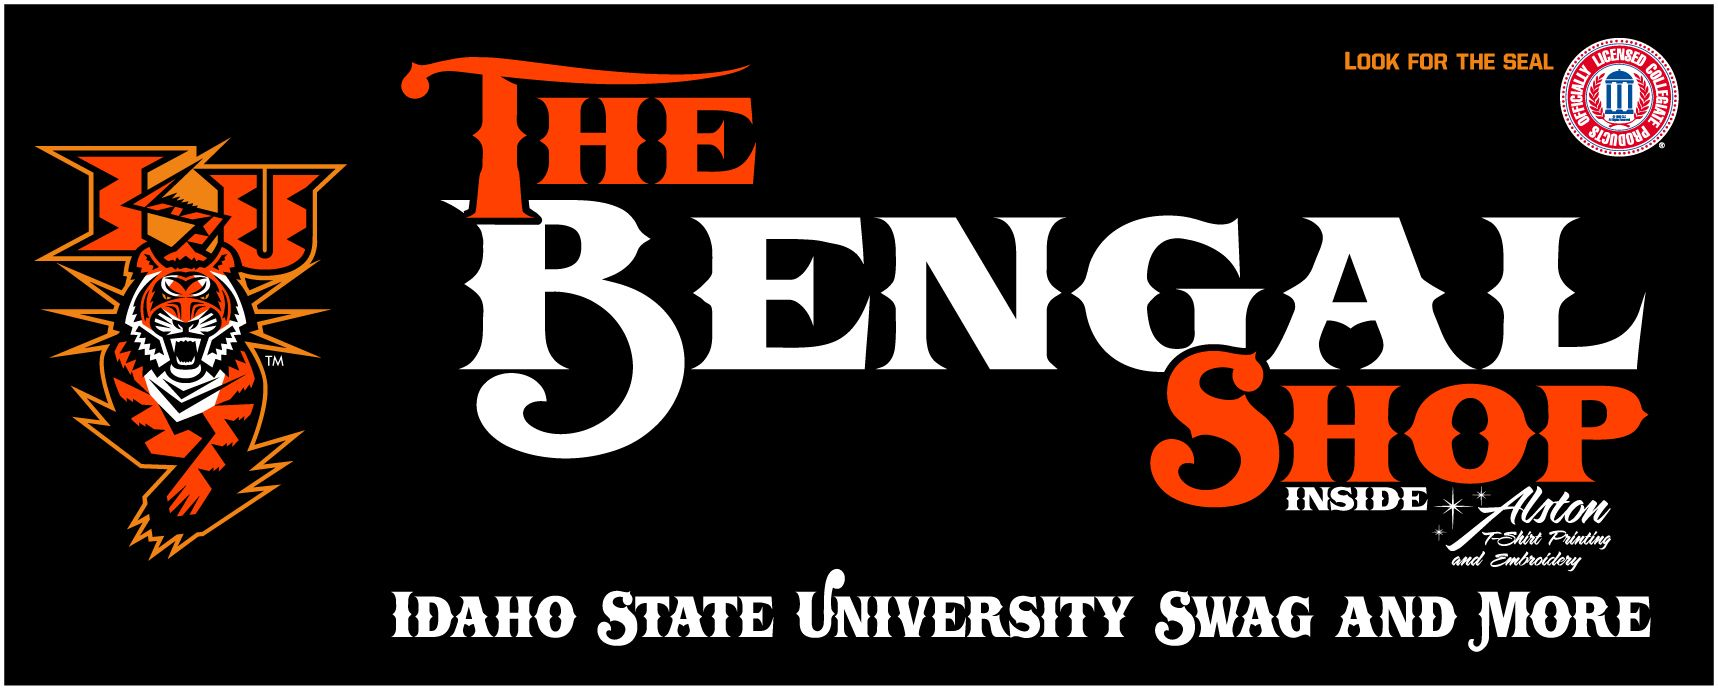 f954faf4 Idaho State University Bengals Logo | The Bengal Shop | Idaho State ...